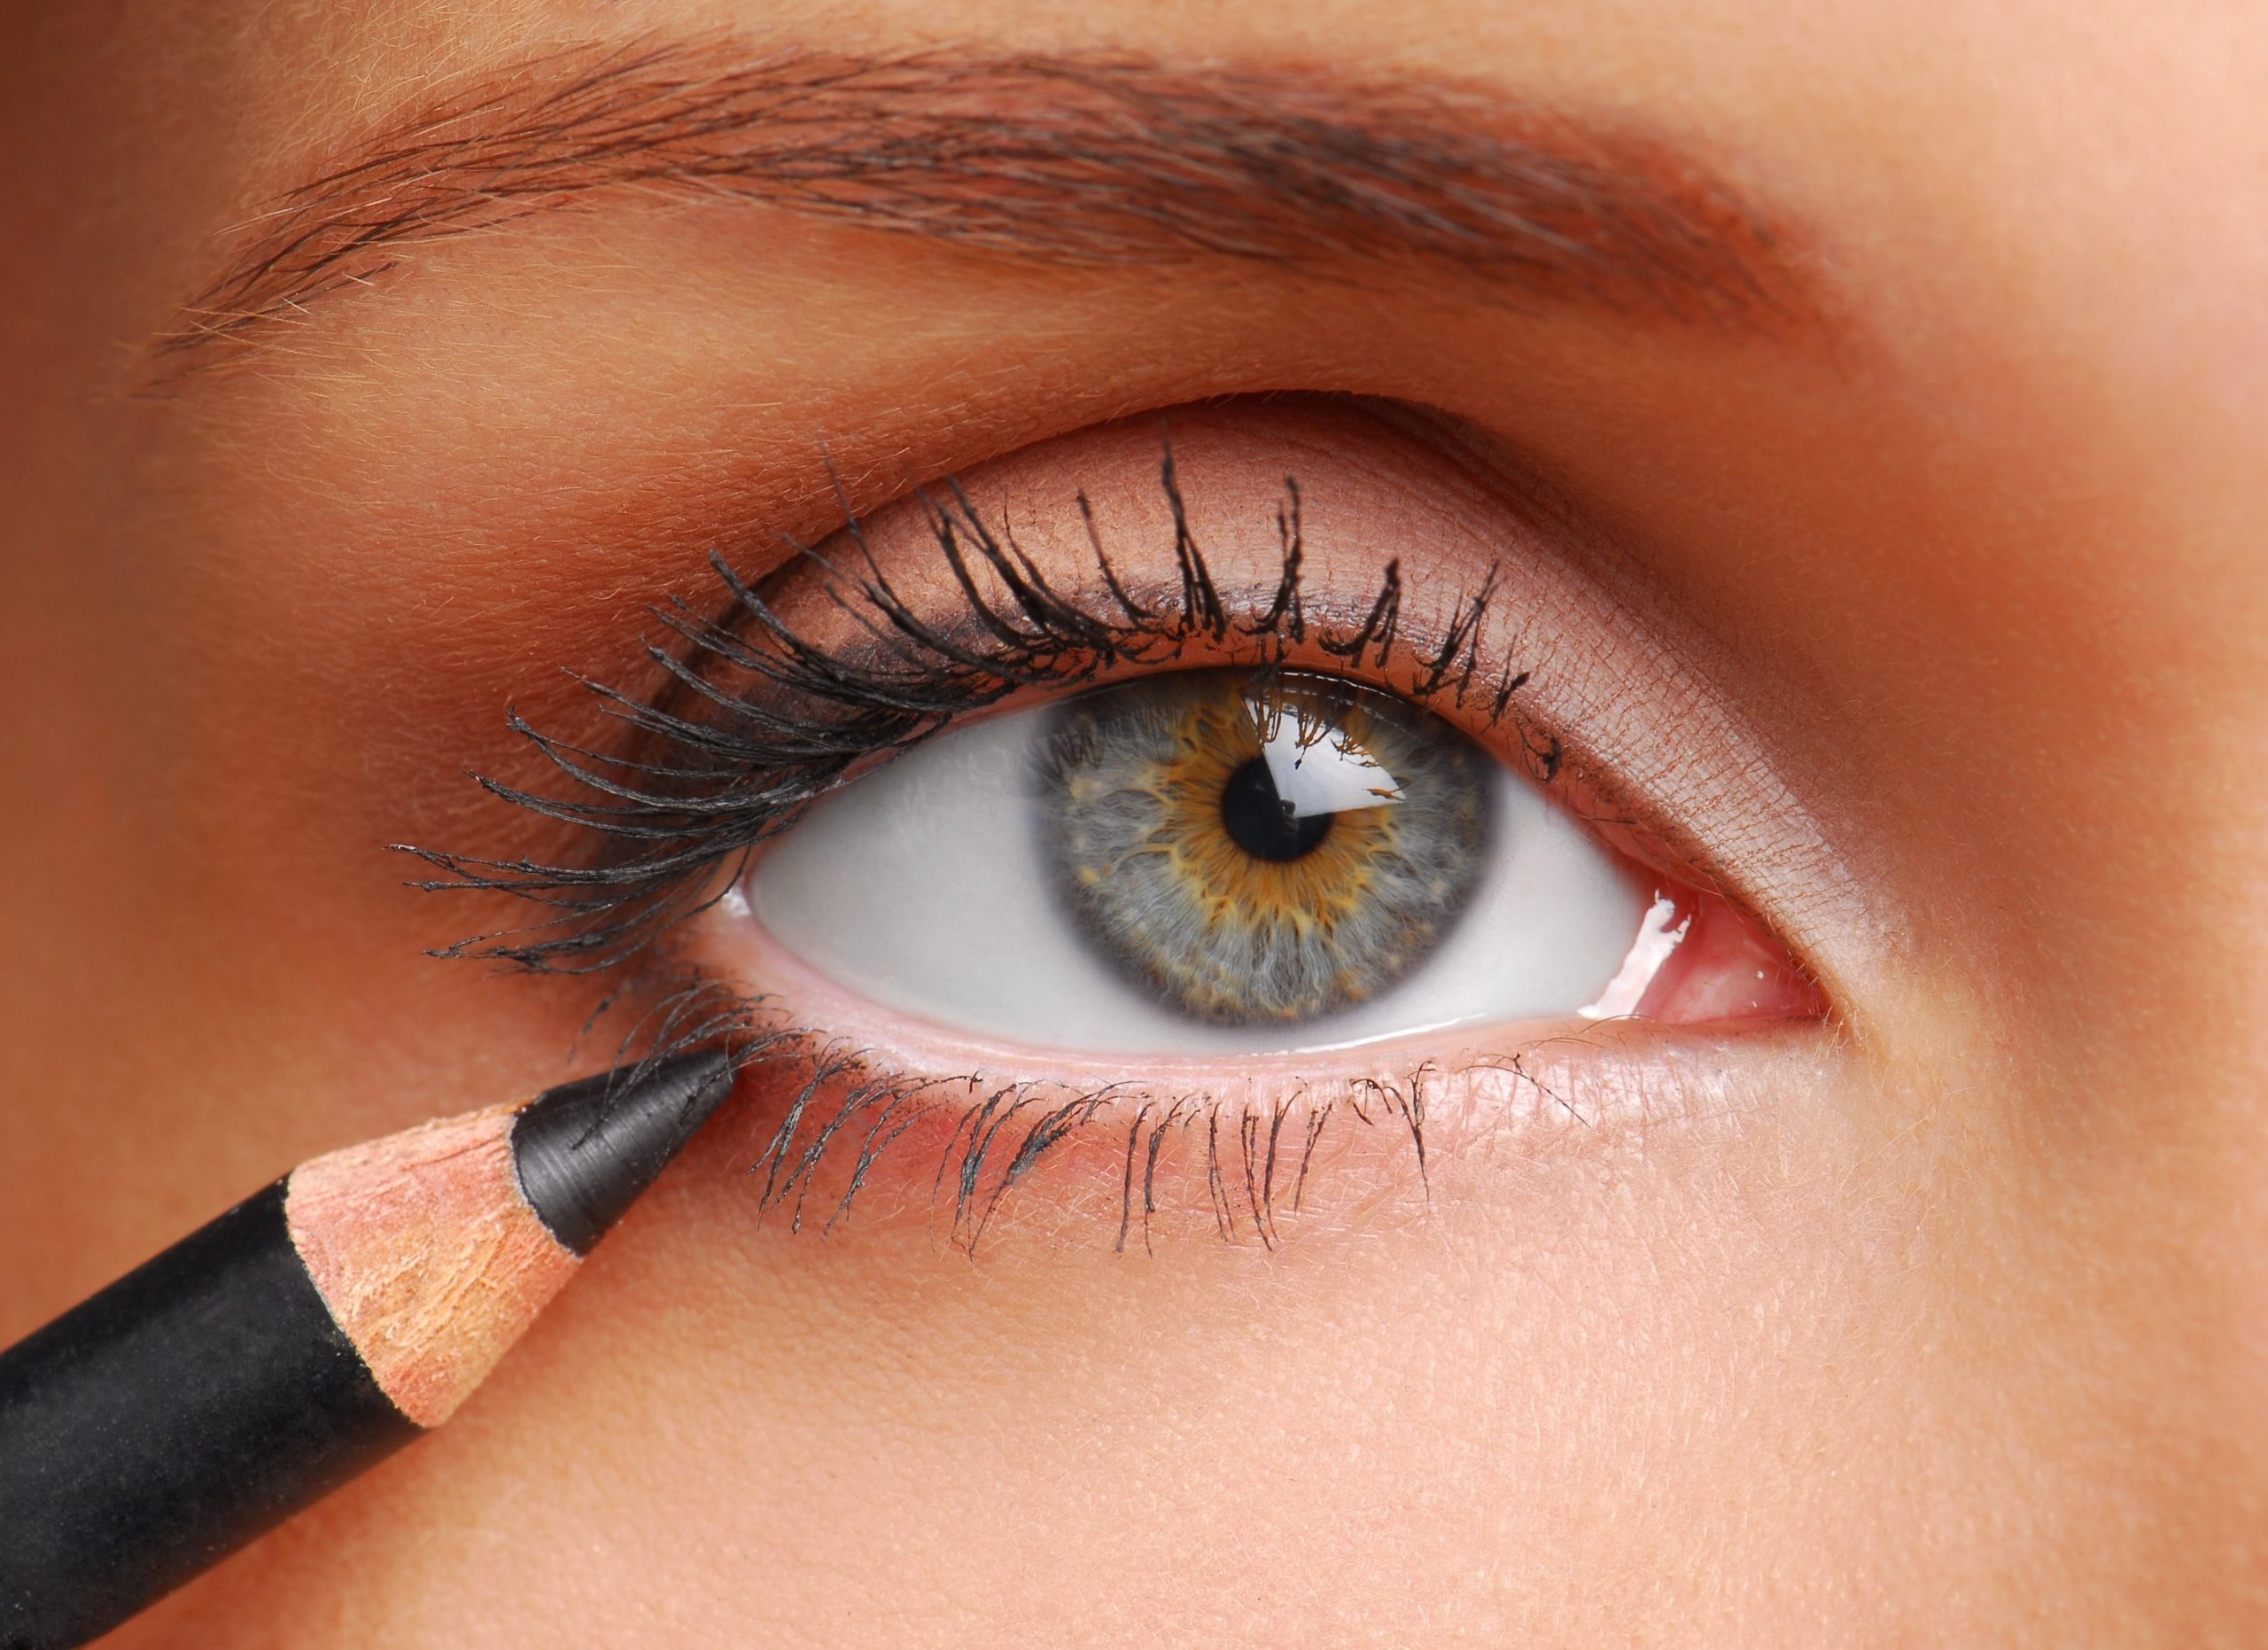 close up picture of a person applying eyeliner to their lower lash line.